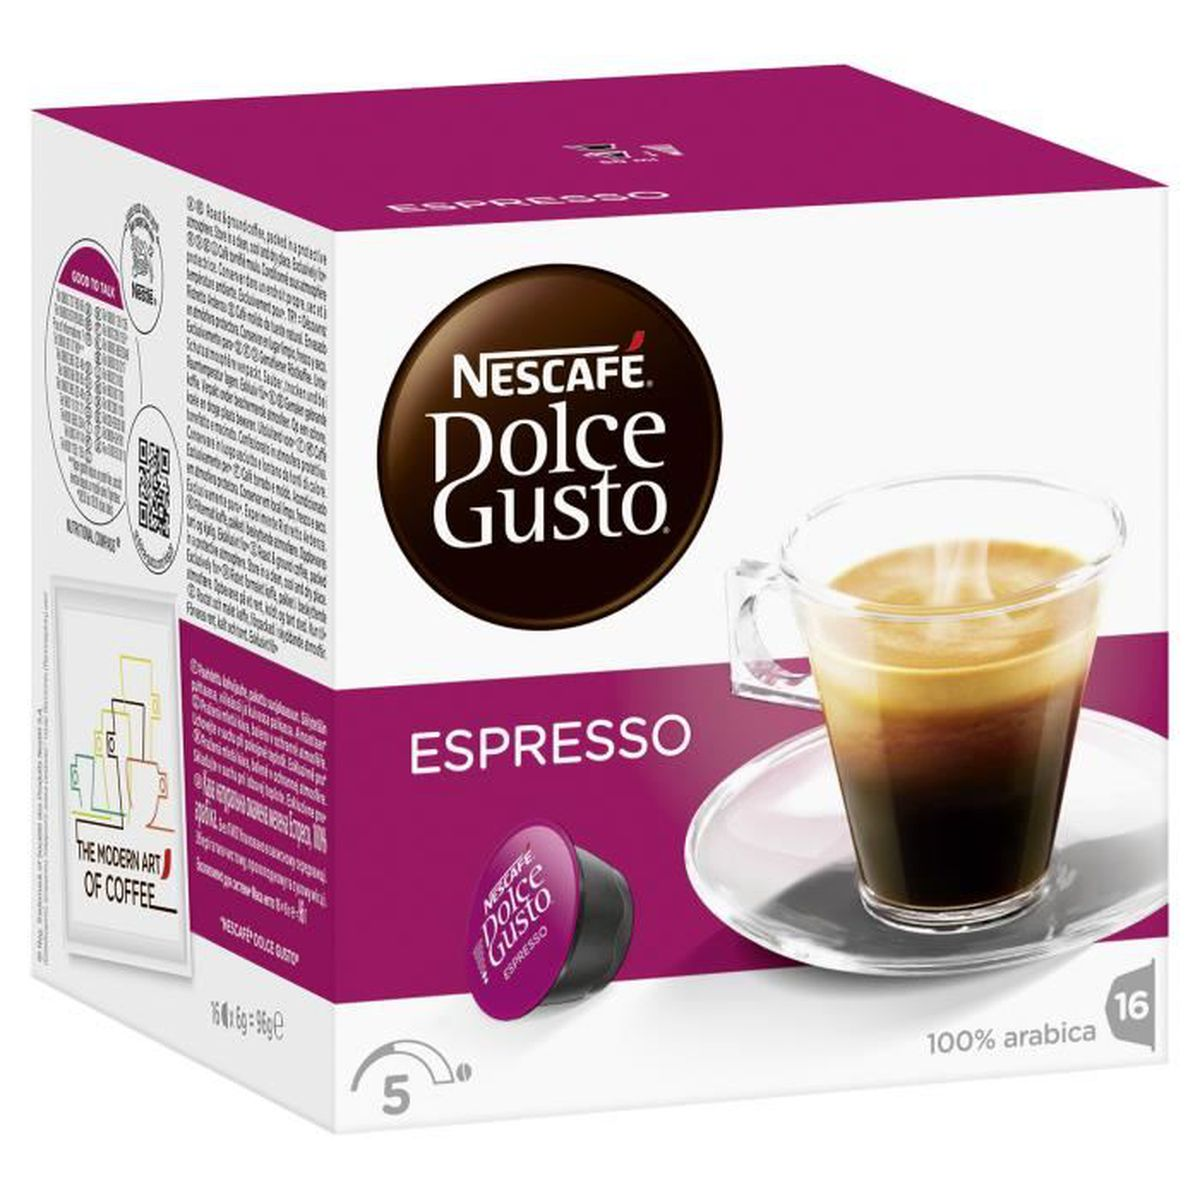 nescafe dolce gusto espresso cafe 16 dosettes achat vente caf chicor e nescafe dolce. Black Bedroom Furniture Sets. Home Design Ideas